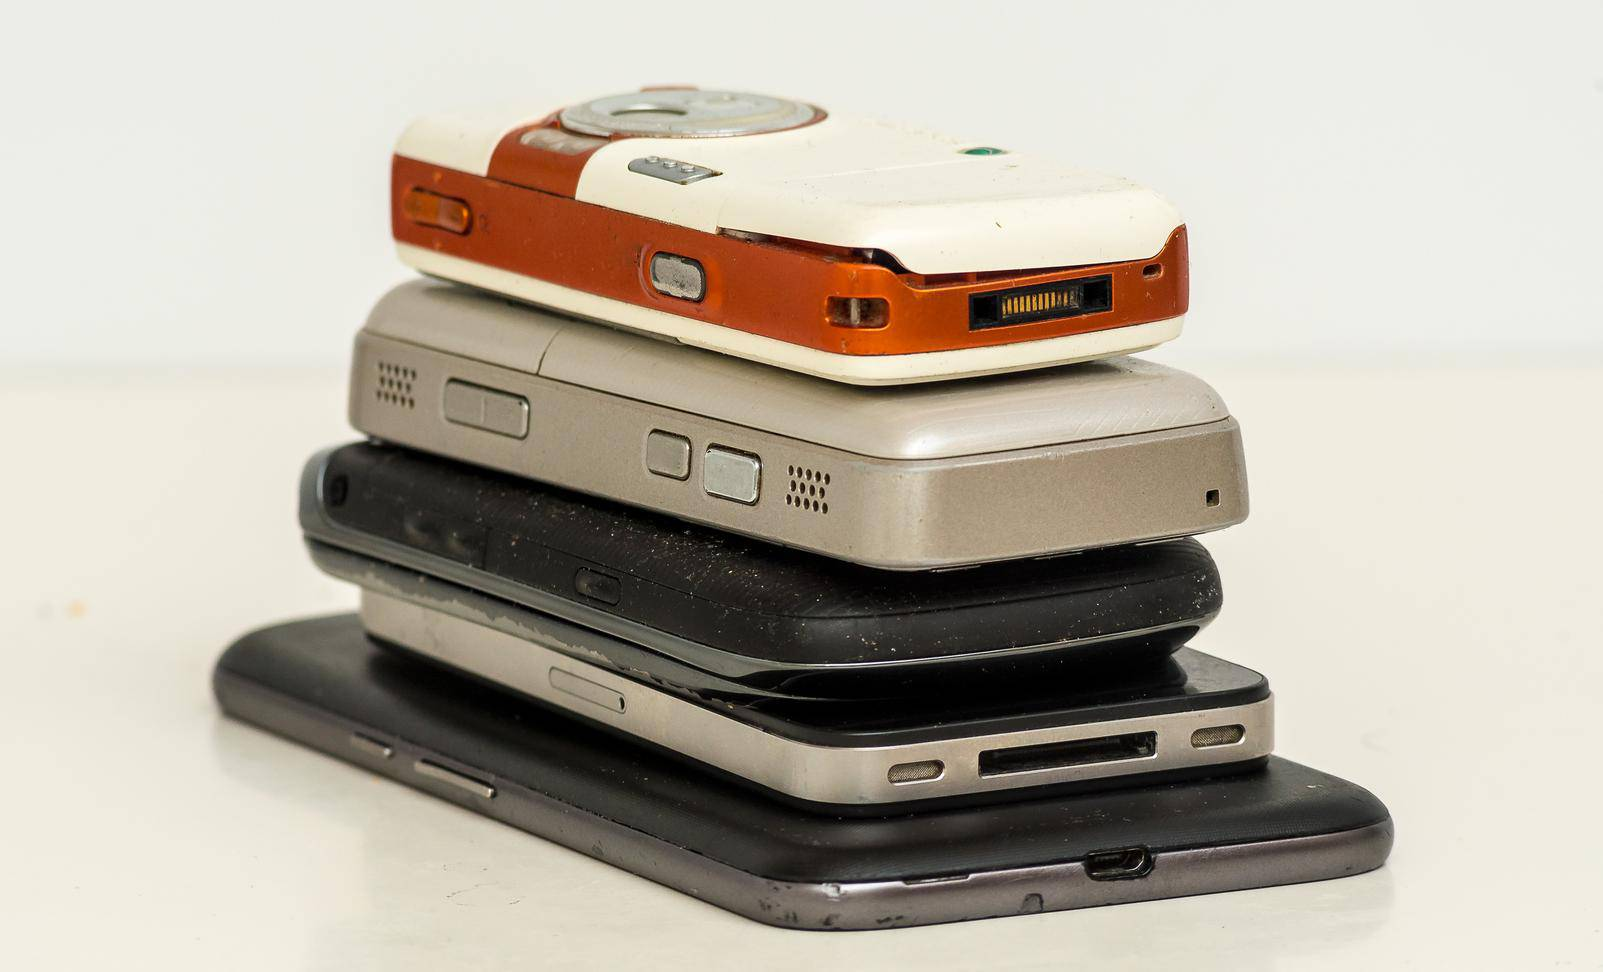 smartphones (used and broken) on white table